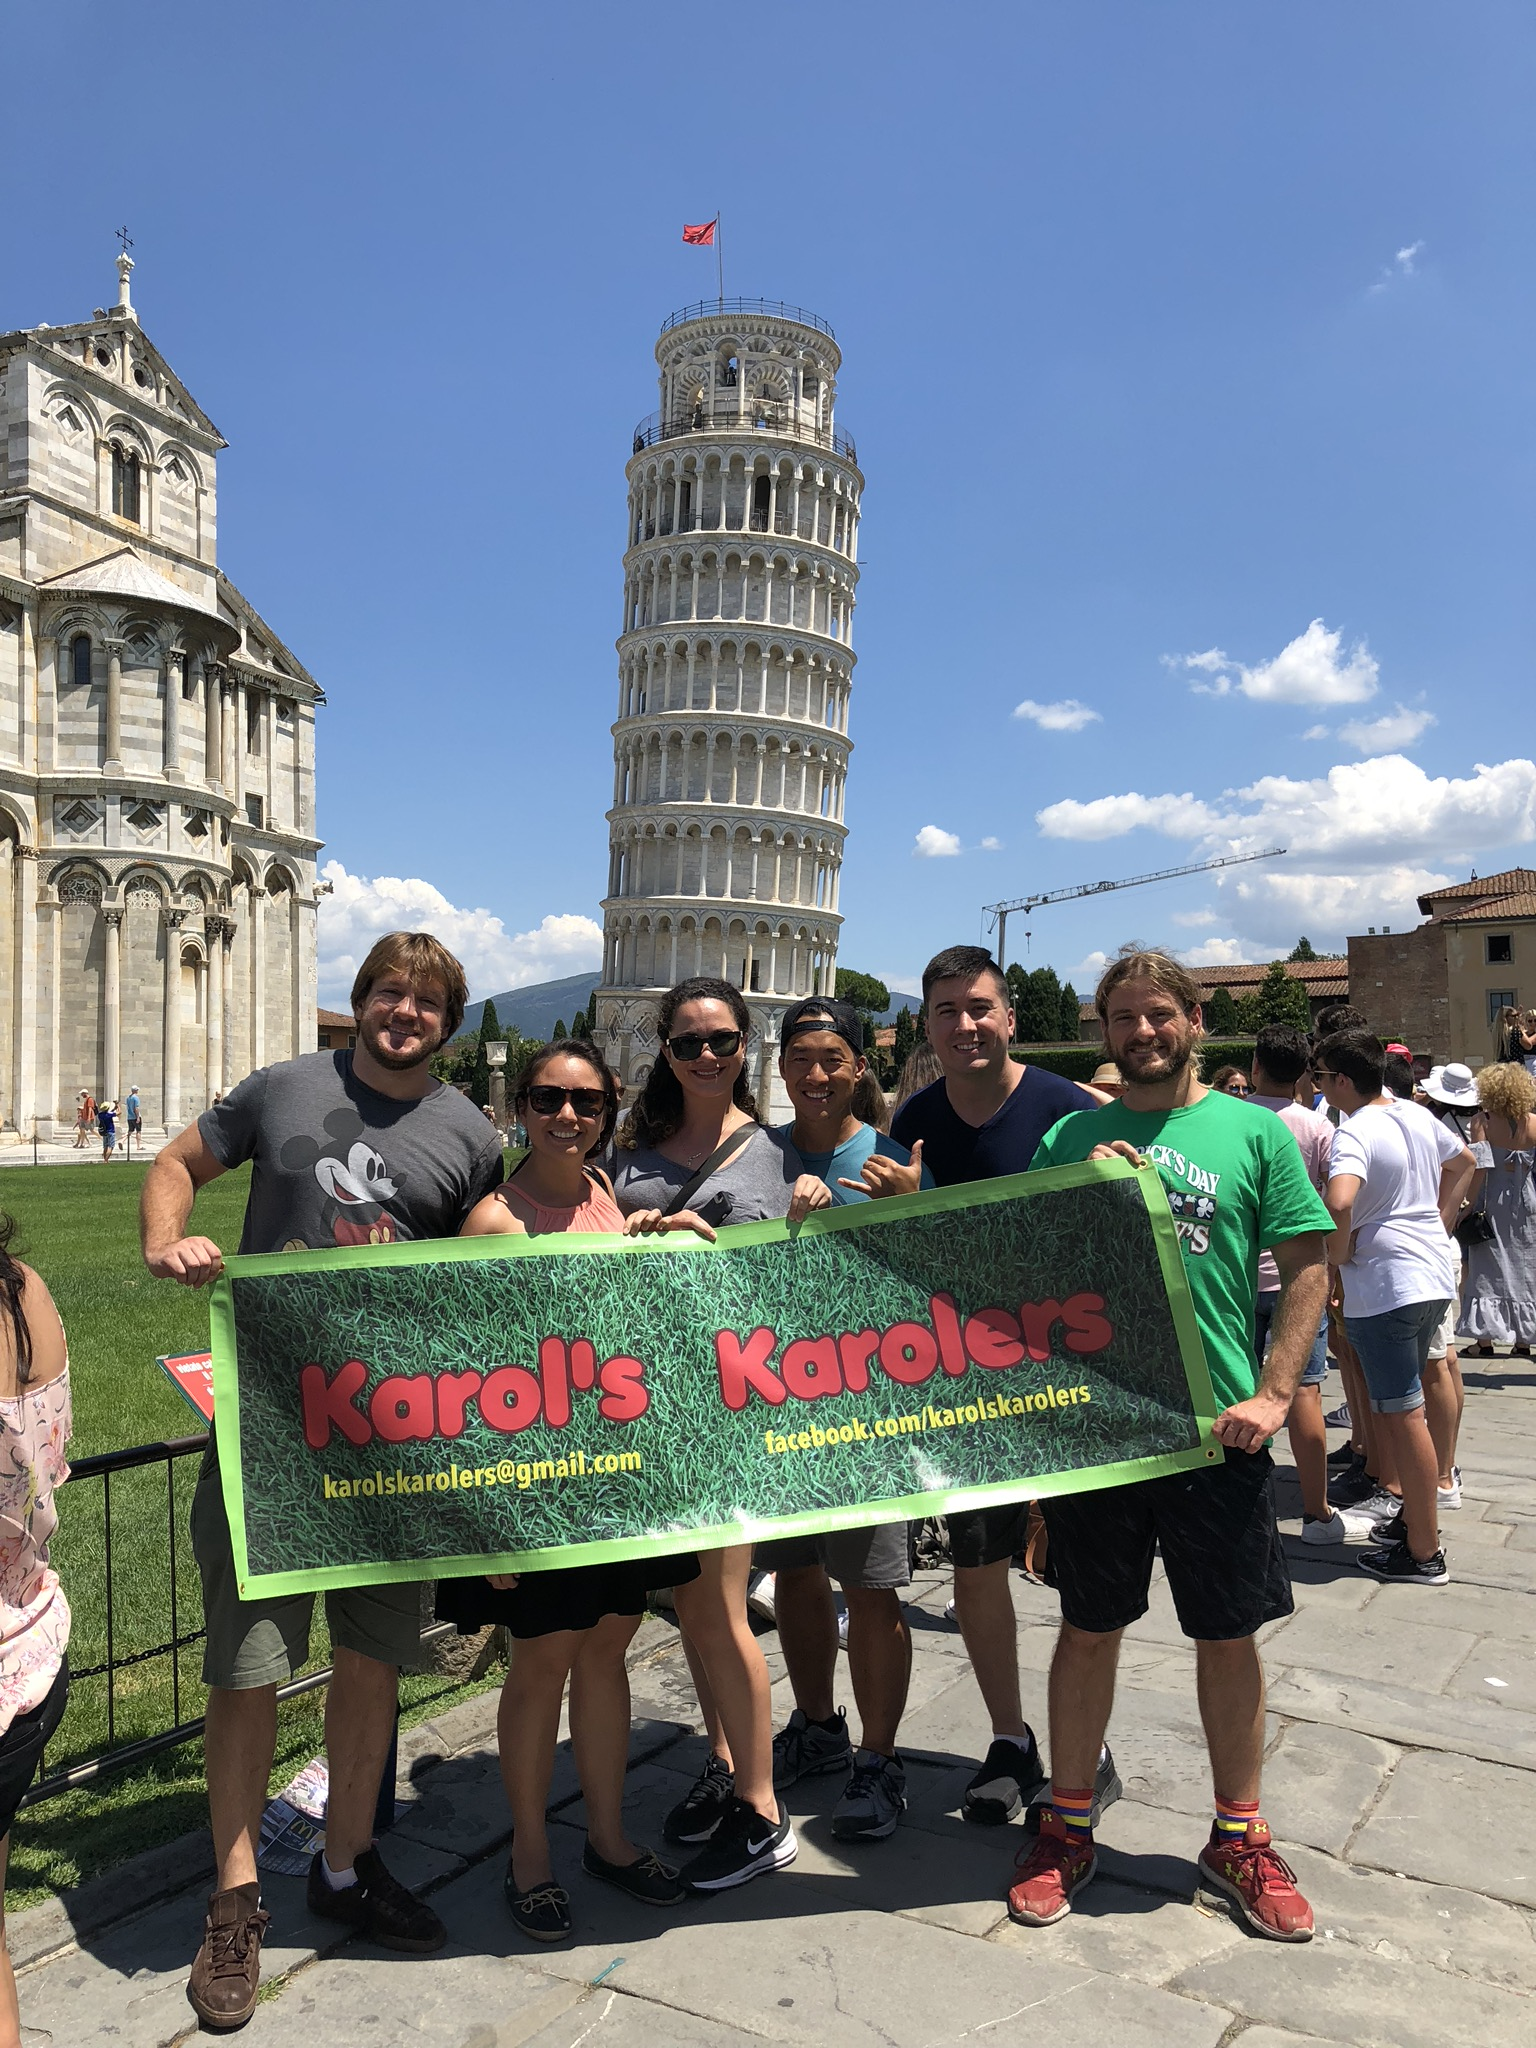 We made it to Pisa!